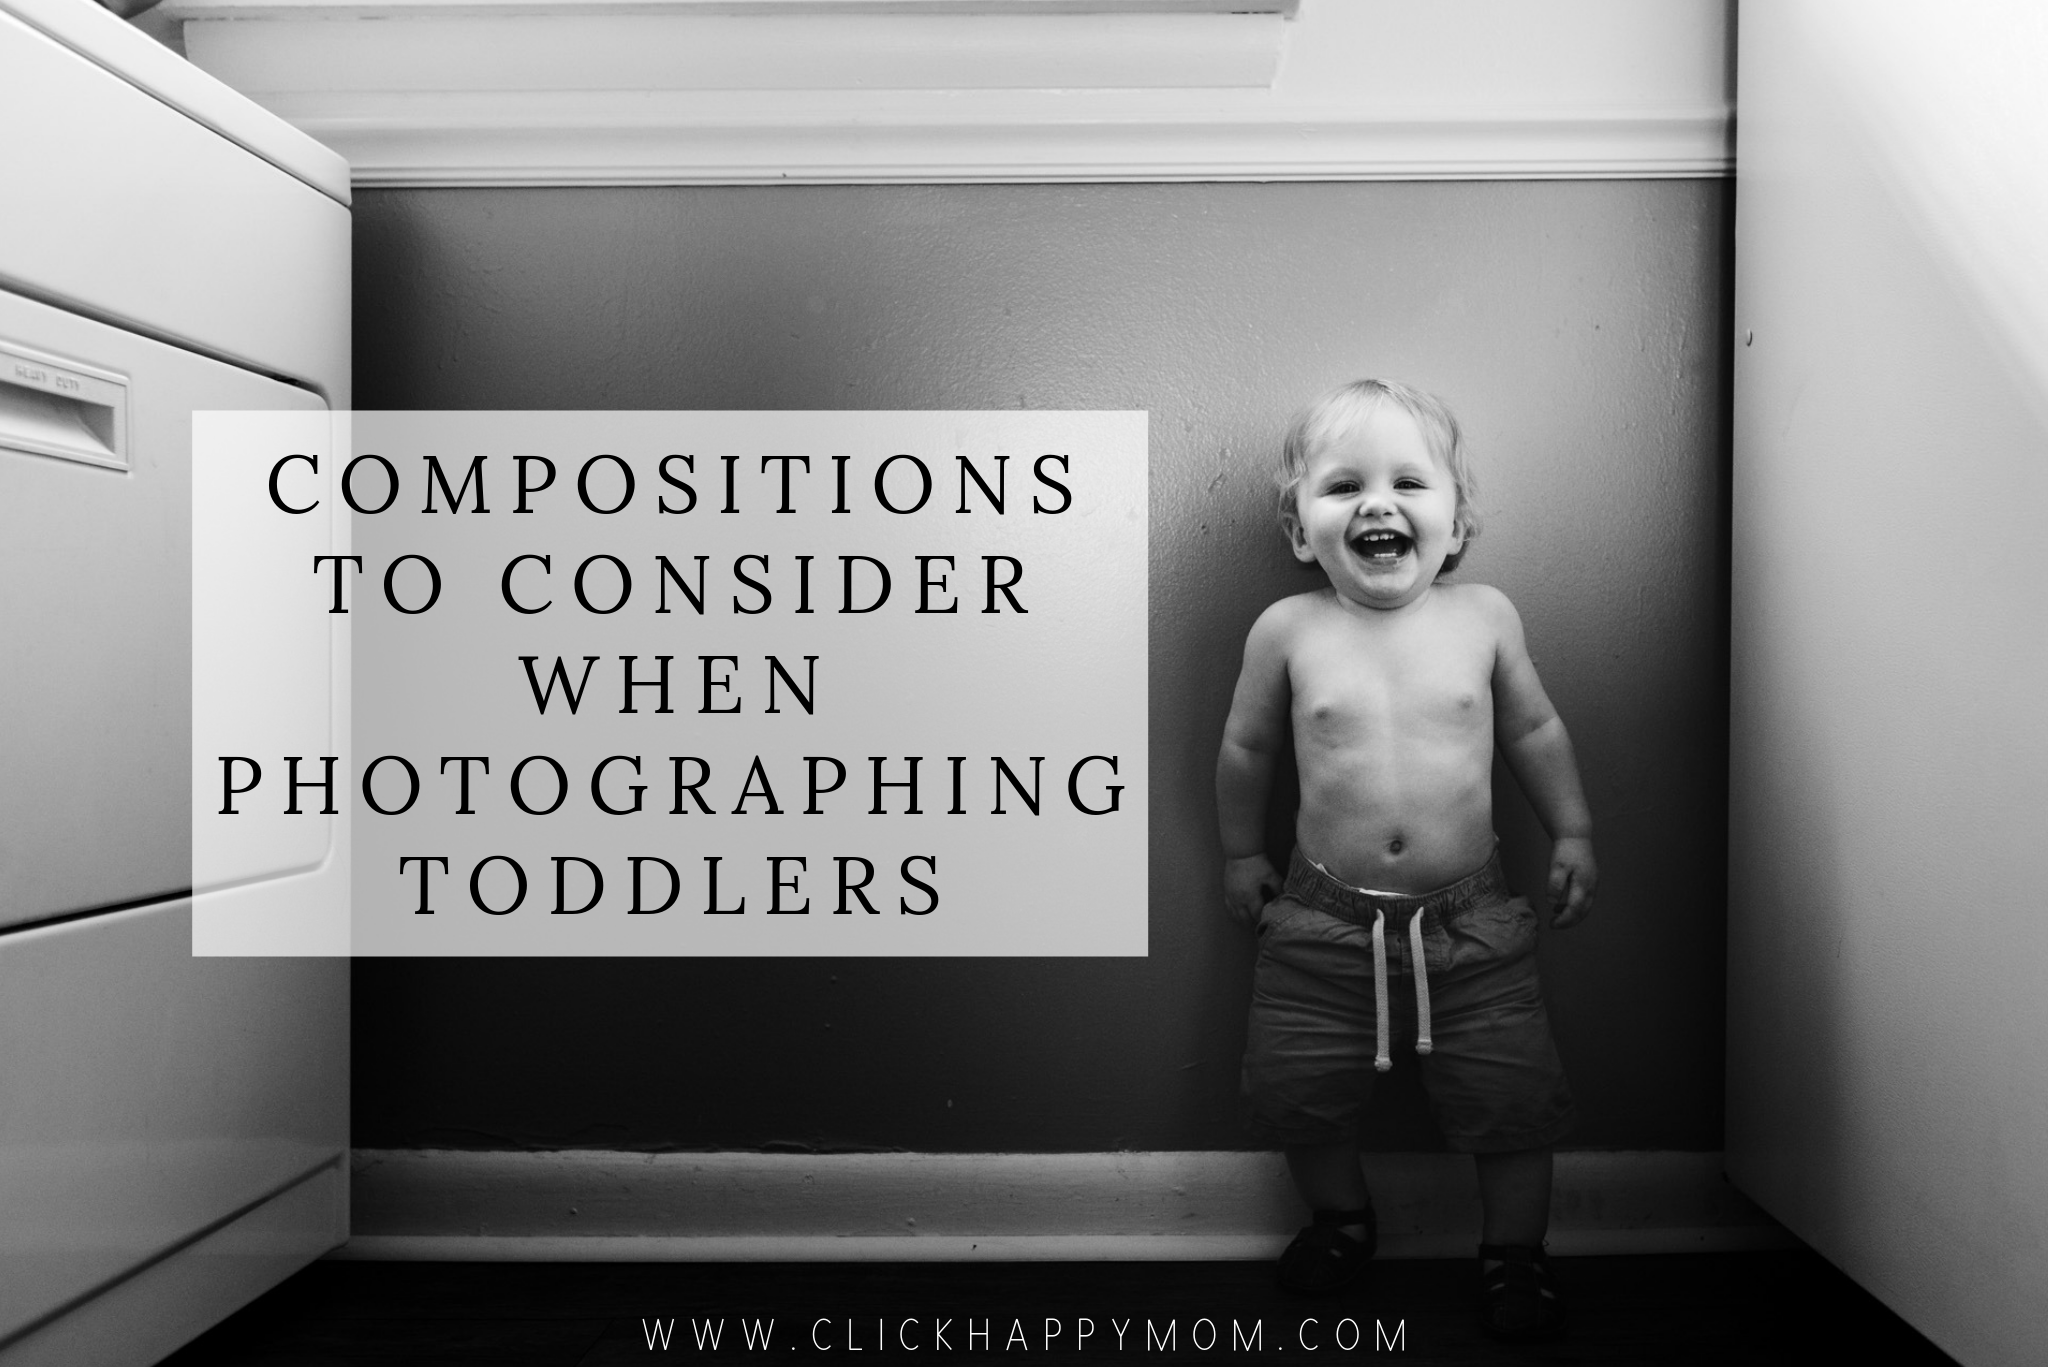 Compositions to Consider When Photographing Toddlers